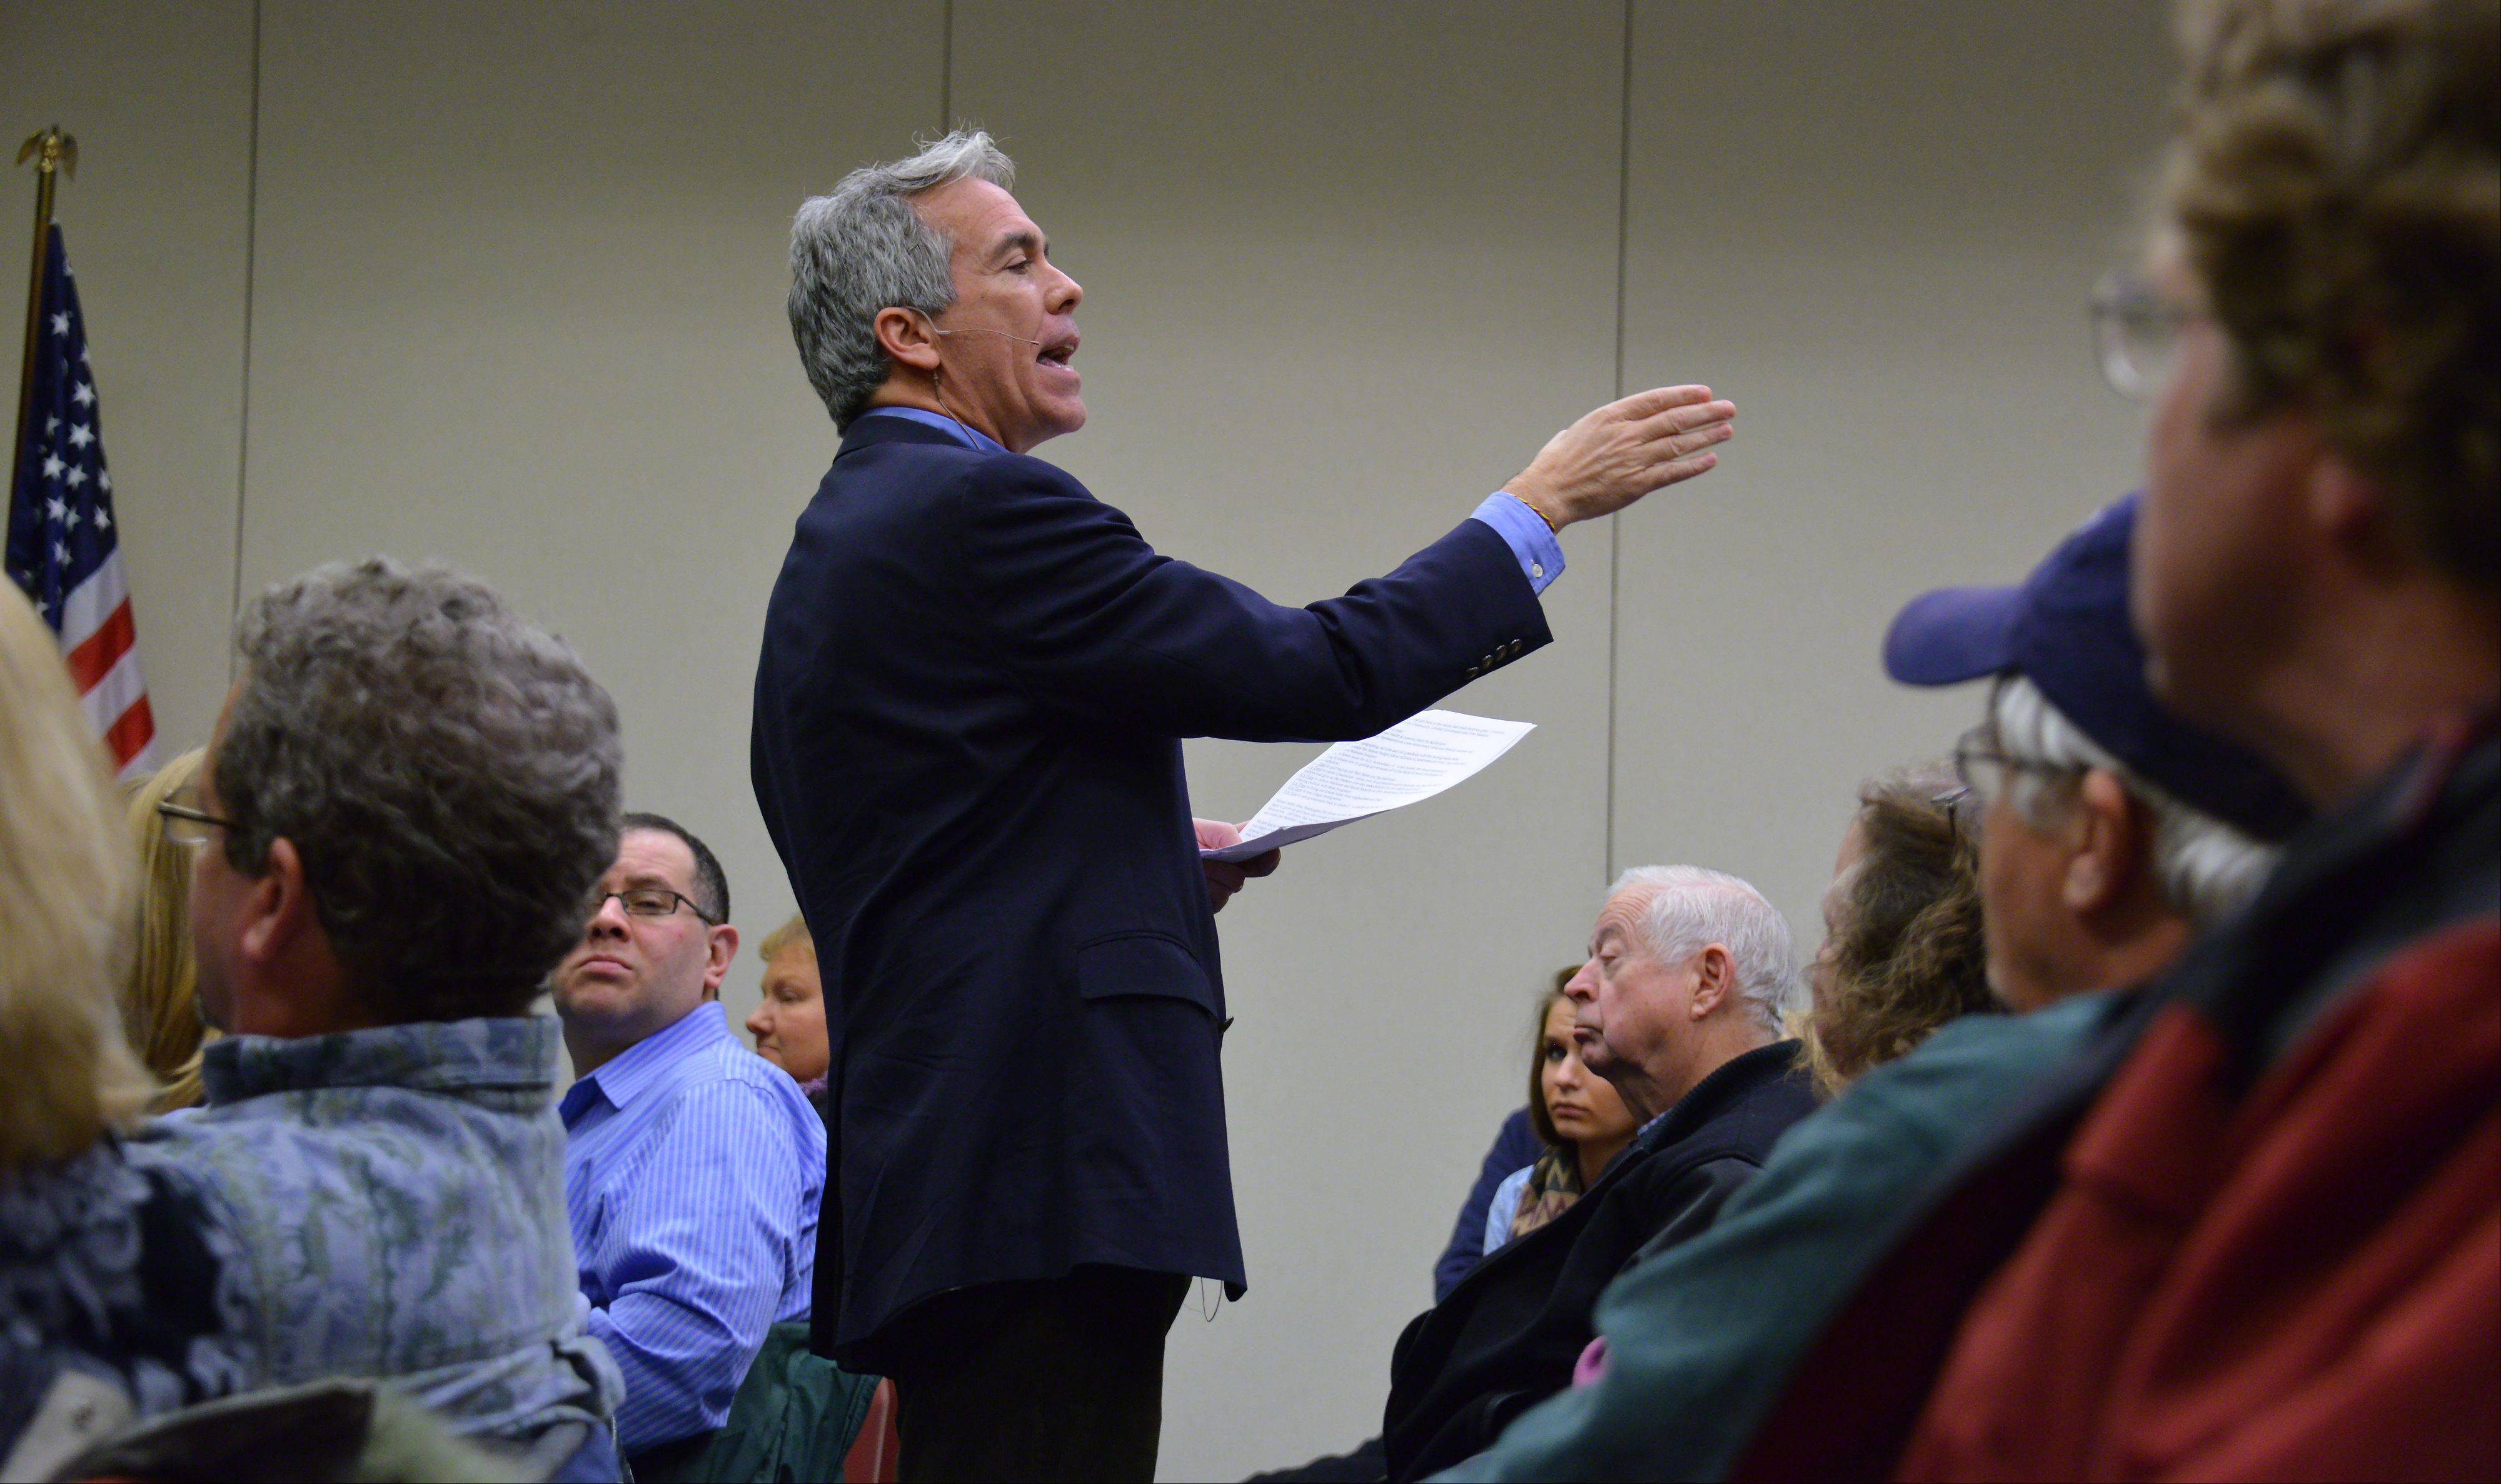 Former U.S. Rep. Joe Walsh made his first public appearance as an ex-congressman at the Arlington Heights Memorial Library on Thursday night and spoke to over 100 people. He spoke about several subjects, including the country's future and his future in politics.